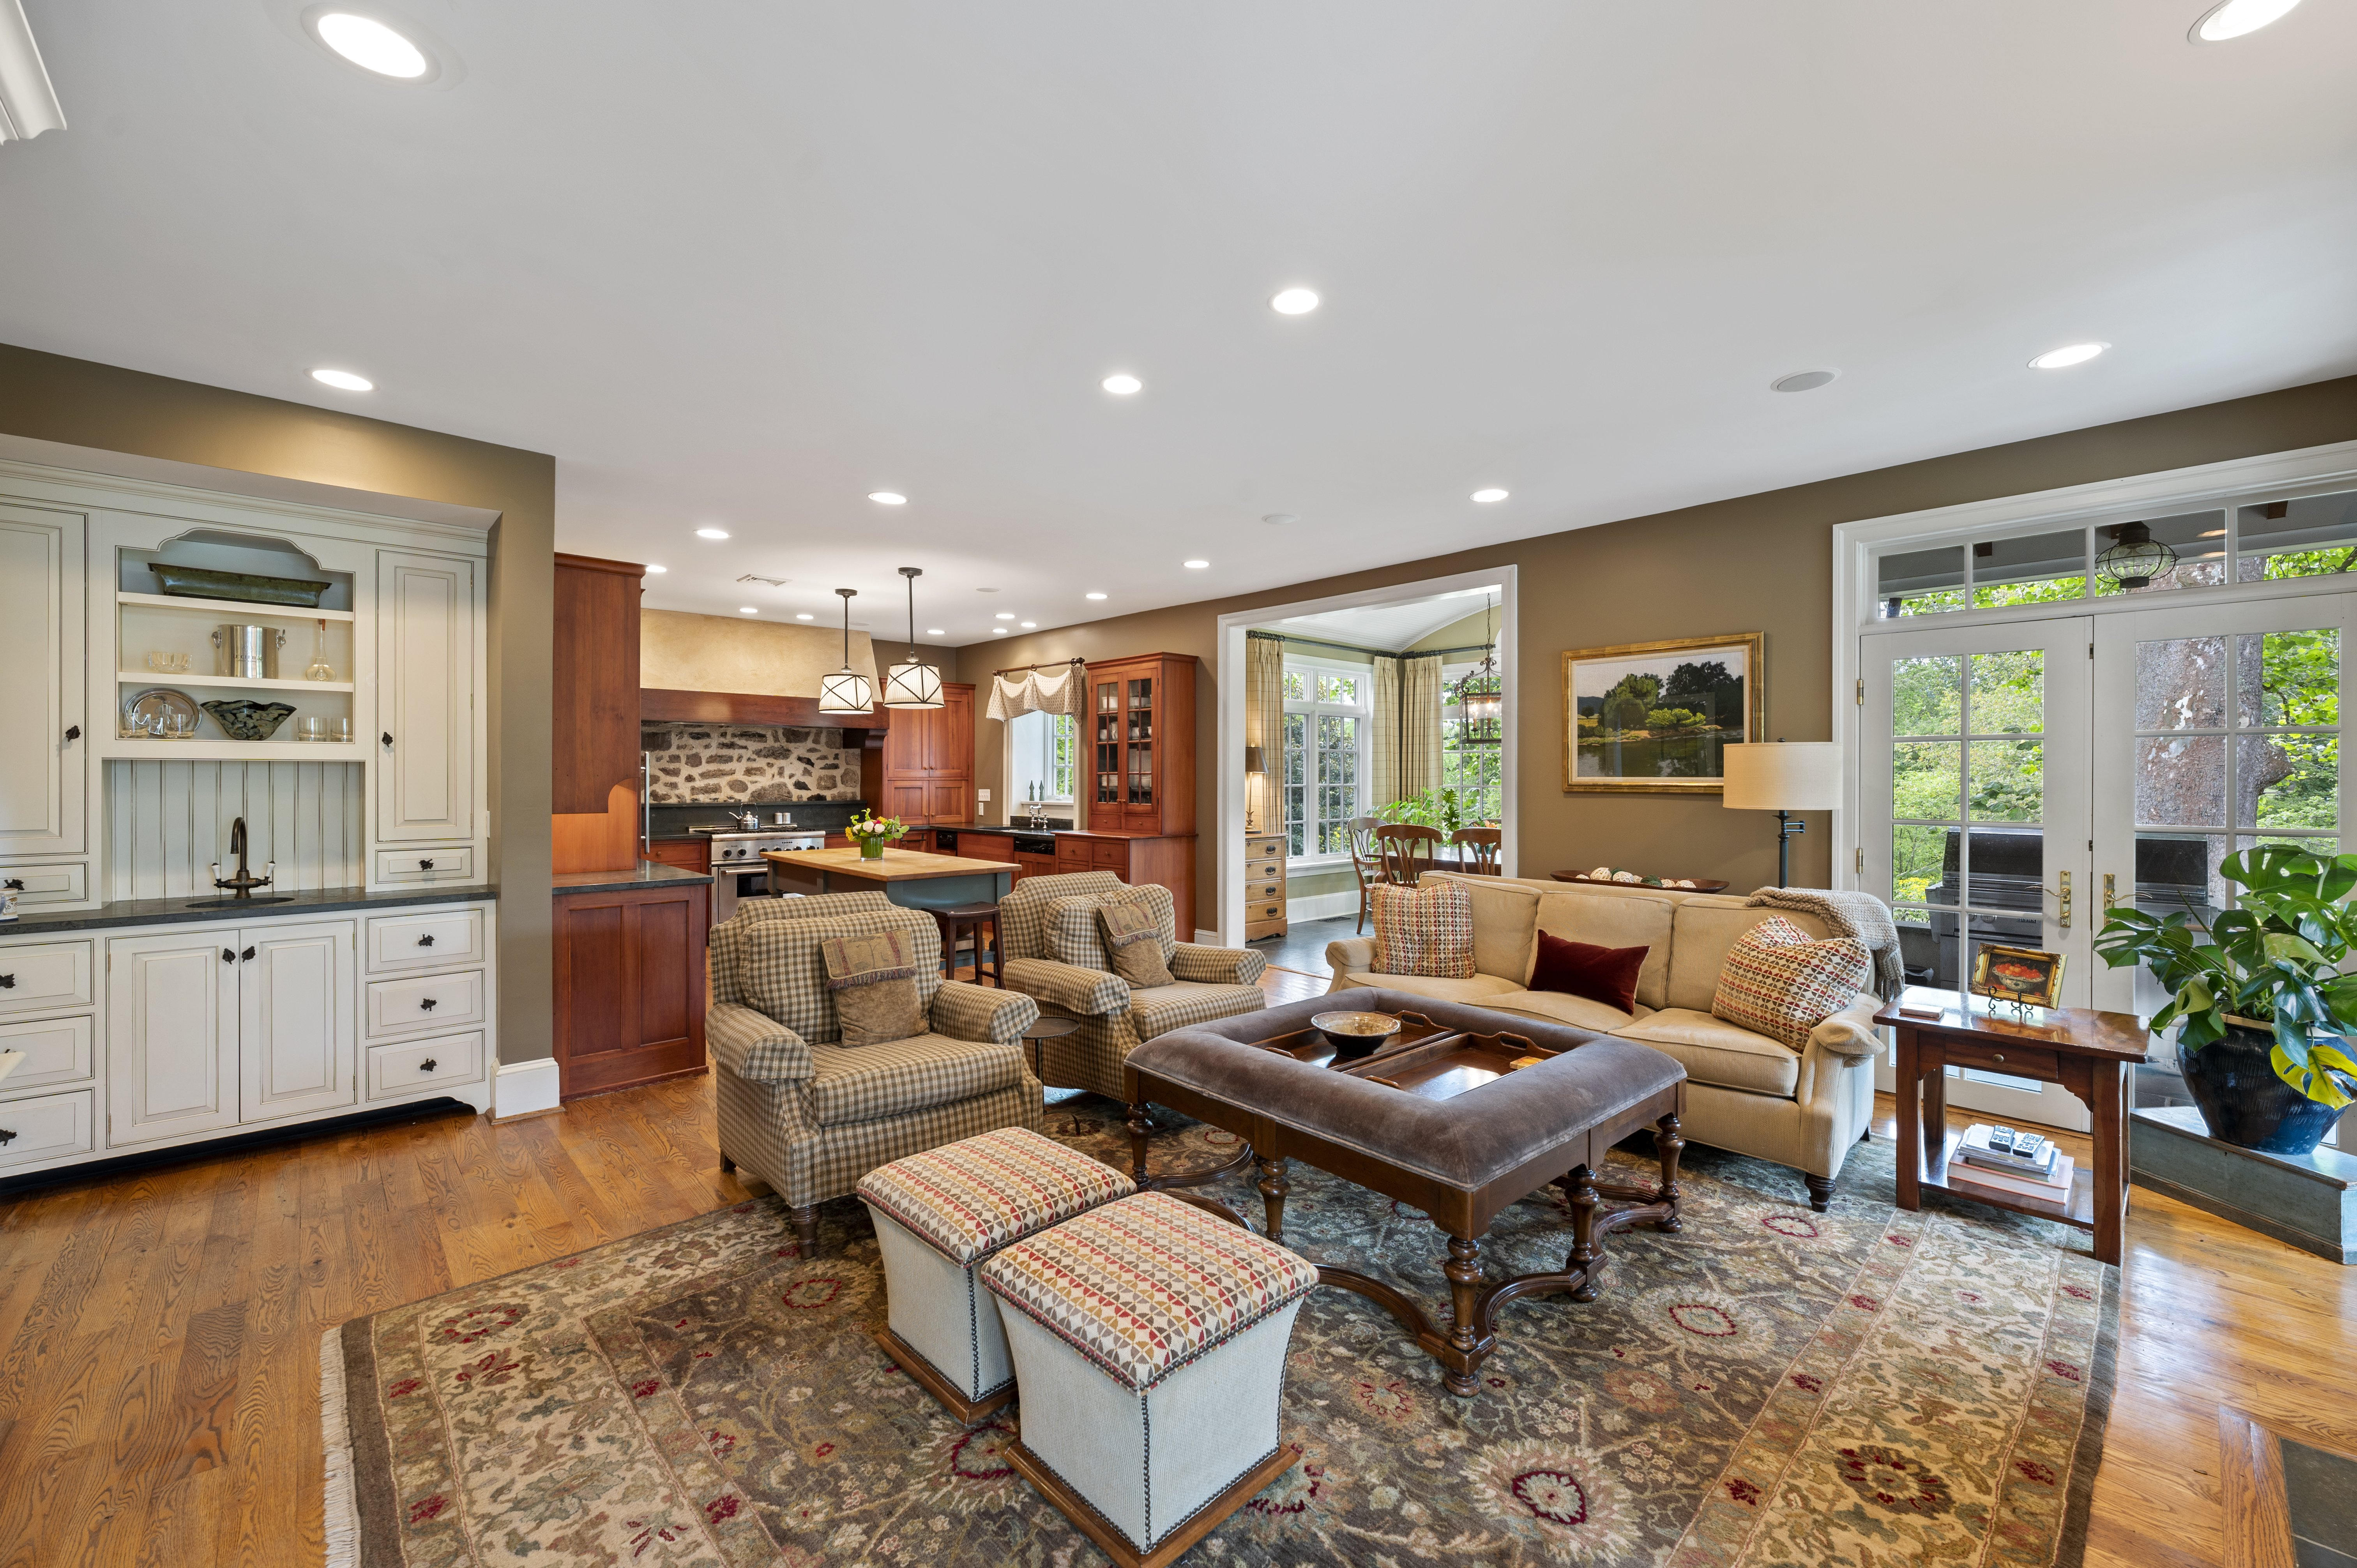 house for sale updated st. davids colonial family room, kitchen, breakfast room